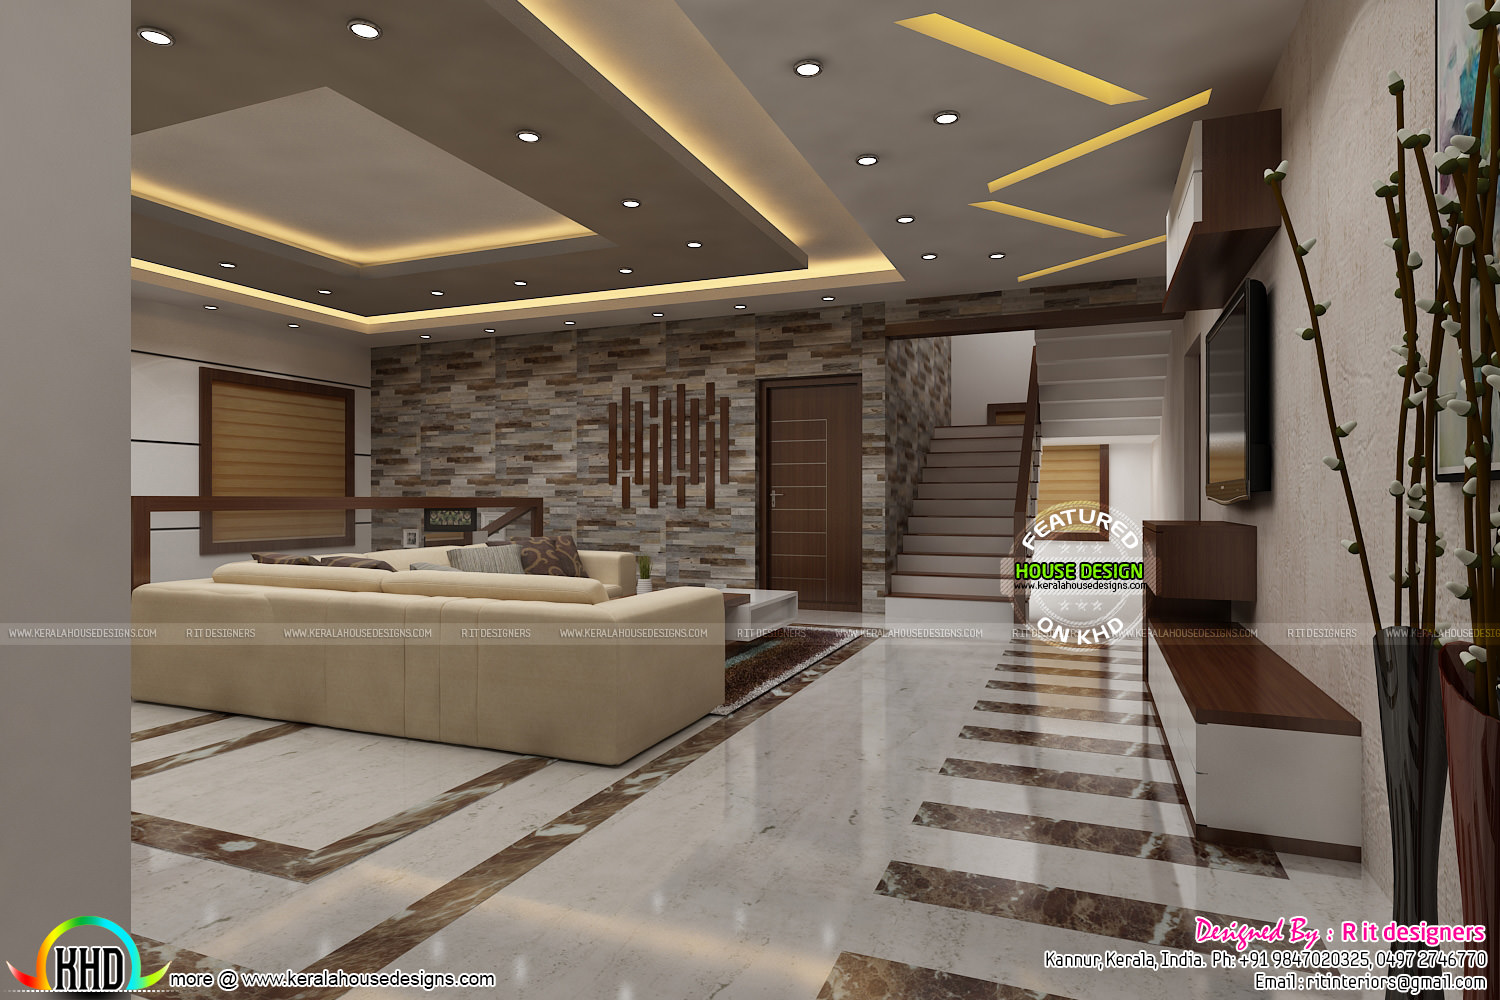 Most modern kerala living room interior kerala home for New modern house interior design